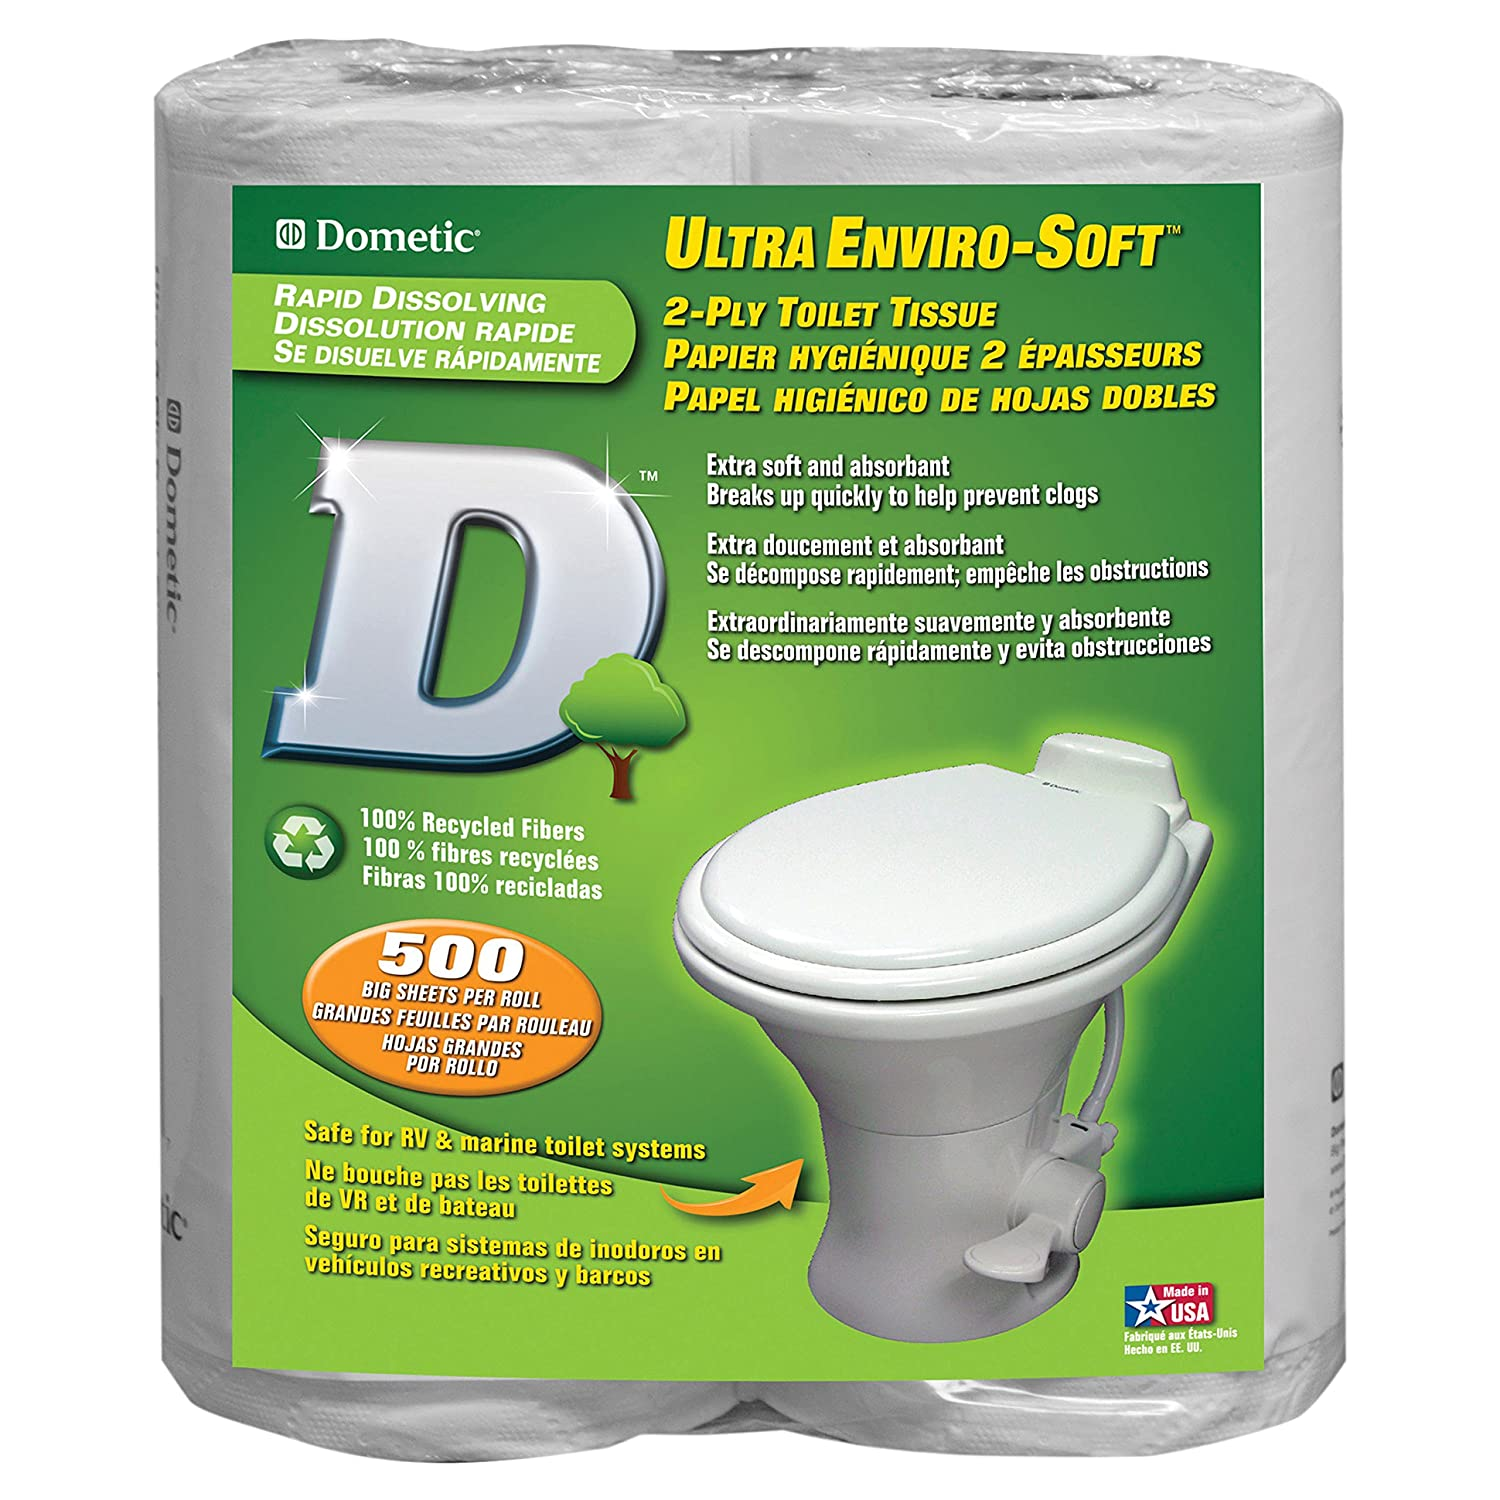 Dometic 379441206 2 Ply Toilet Tissue One Pack of 4 rolls